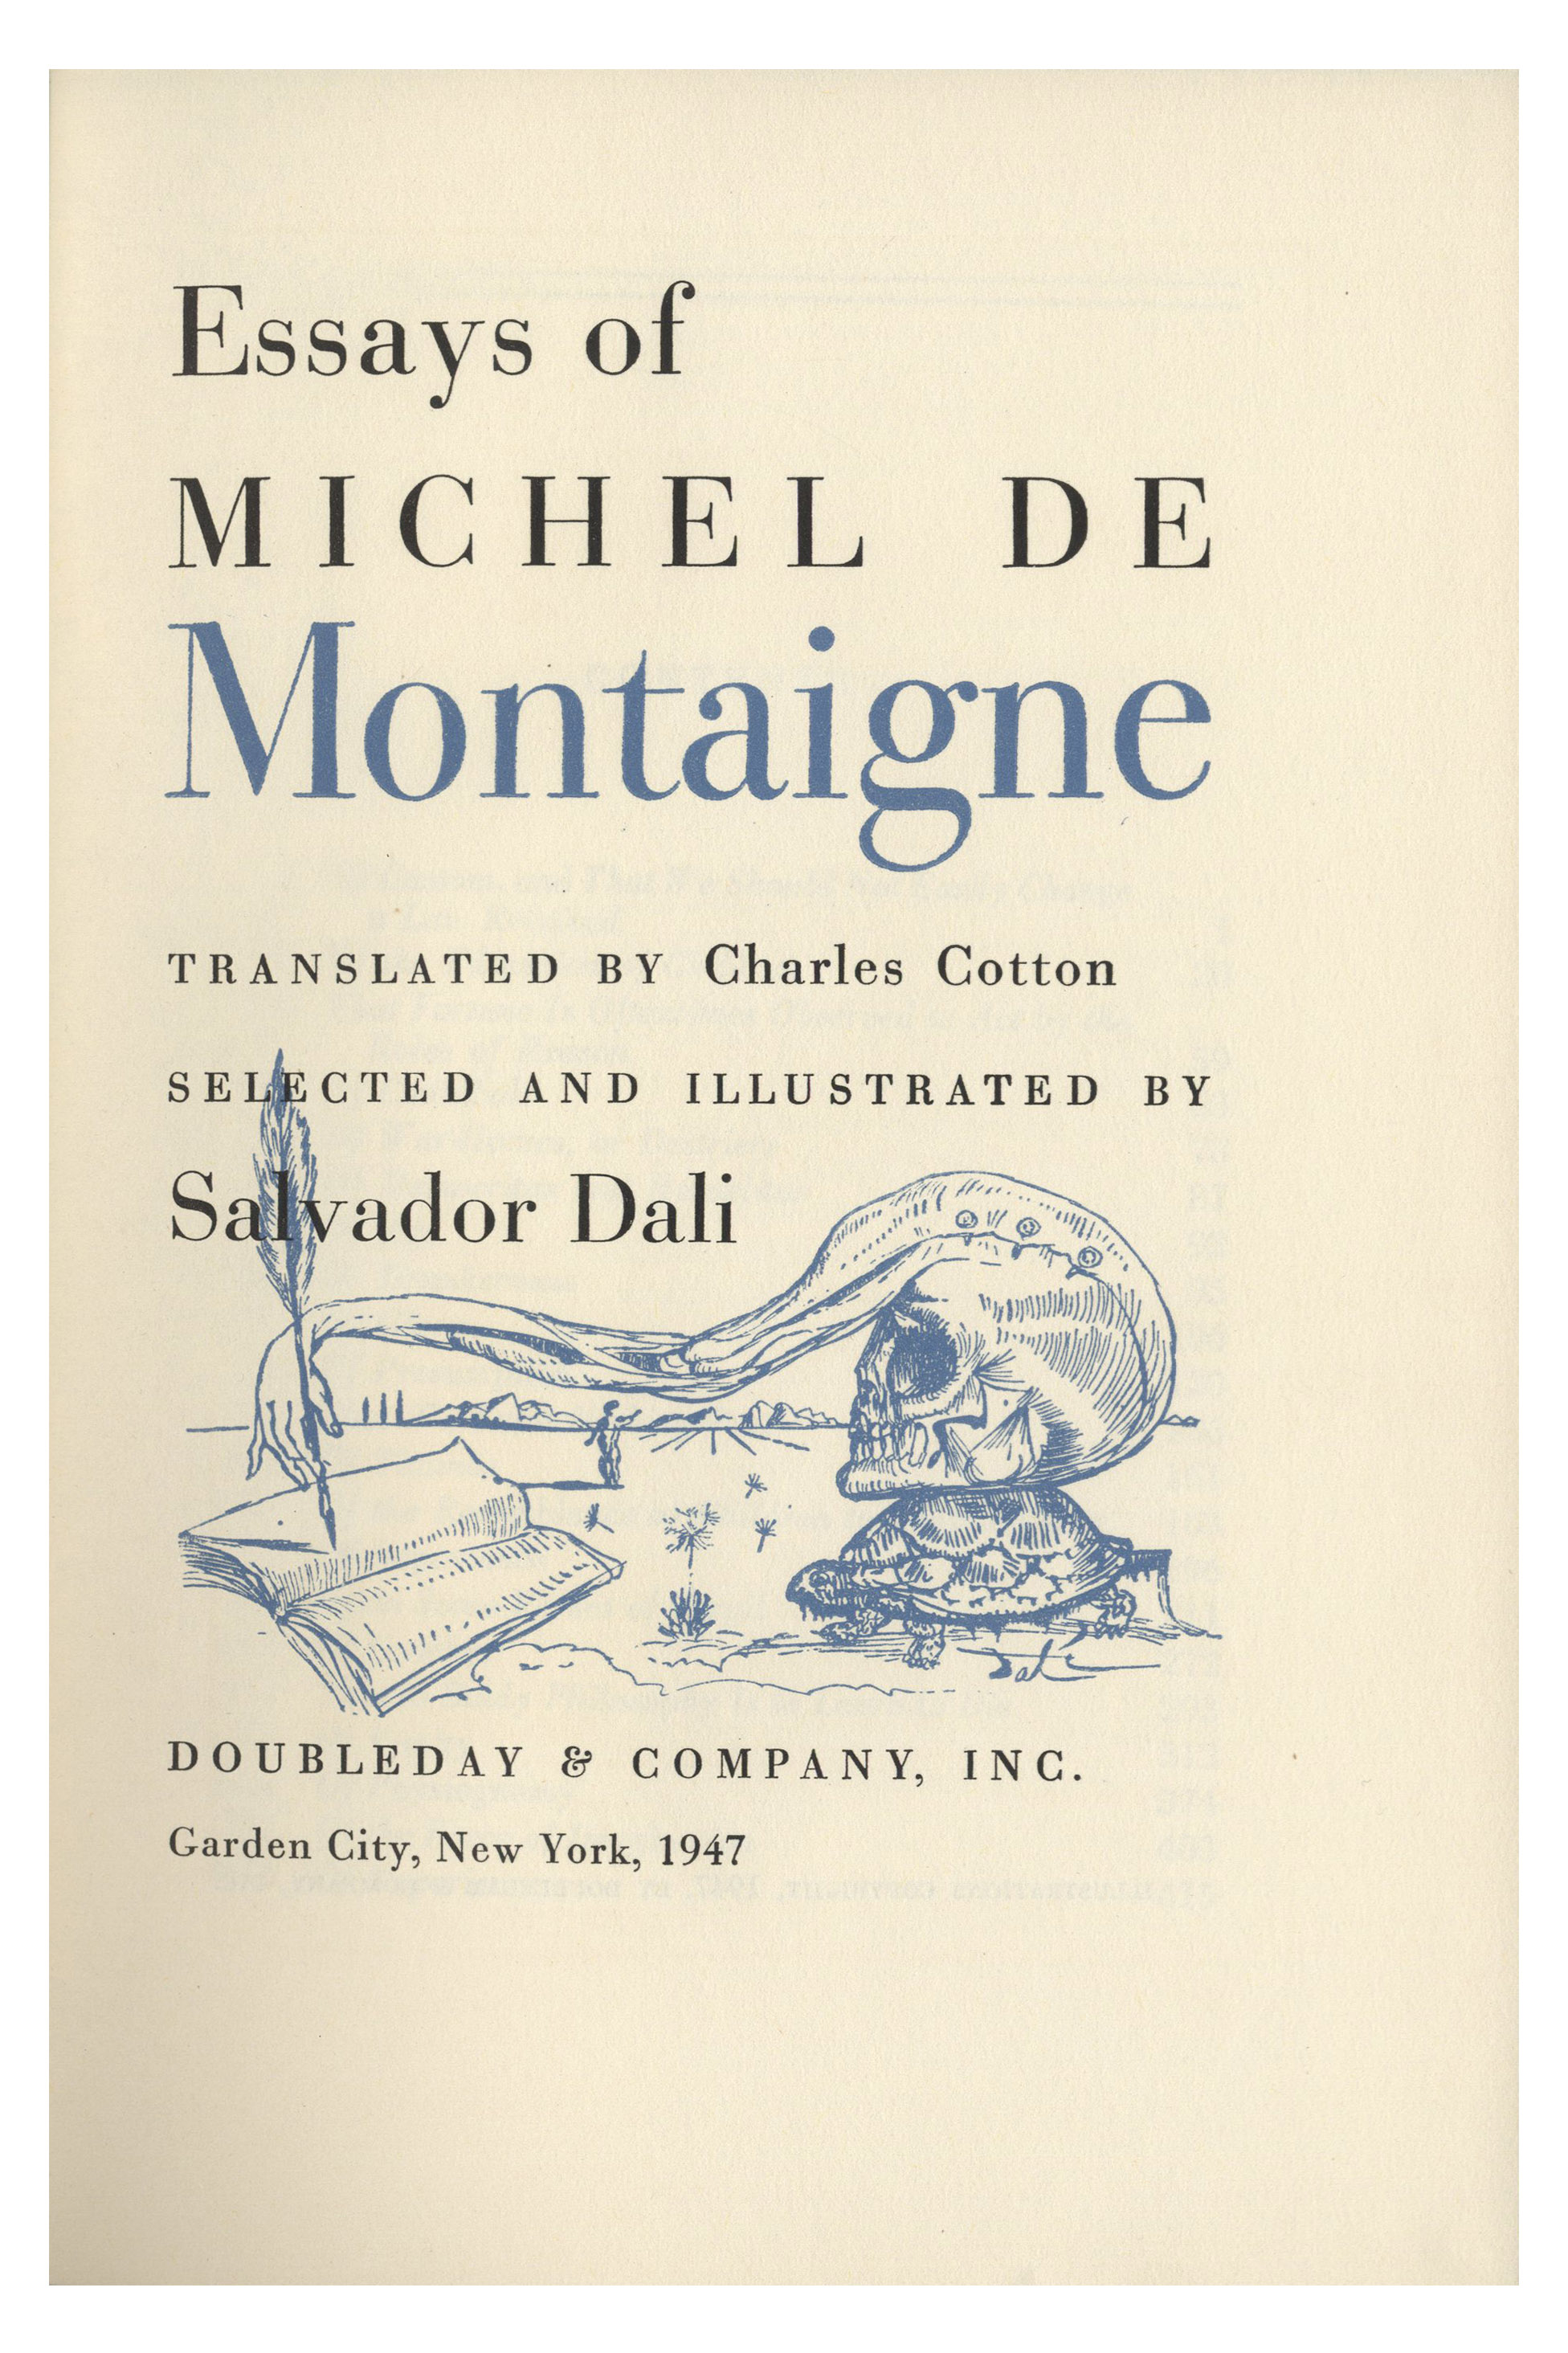 016 Essay Example Salvador Dali Signed Essays Michel Montaigne 53508d Lg Frightening De On Experience Summary Quotes Full